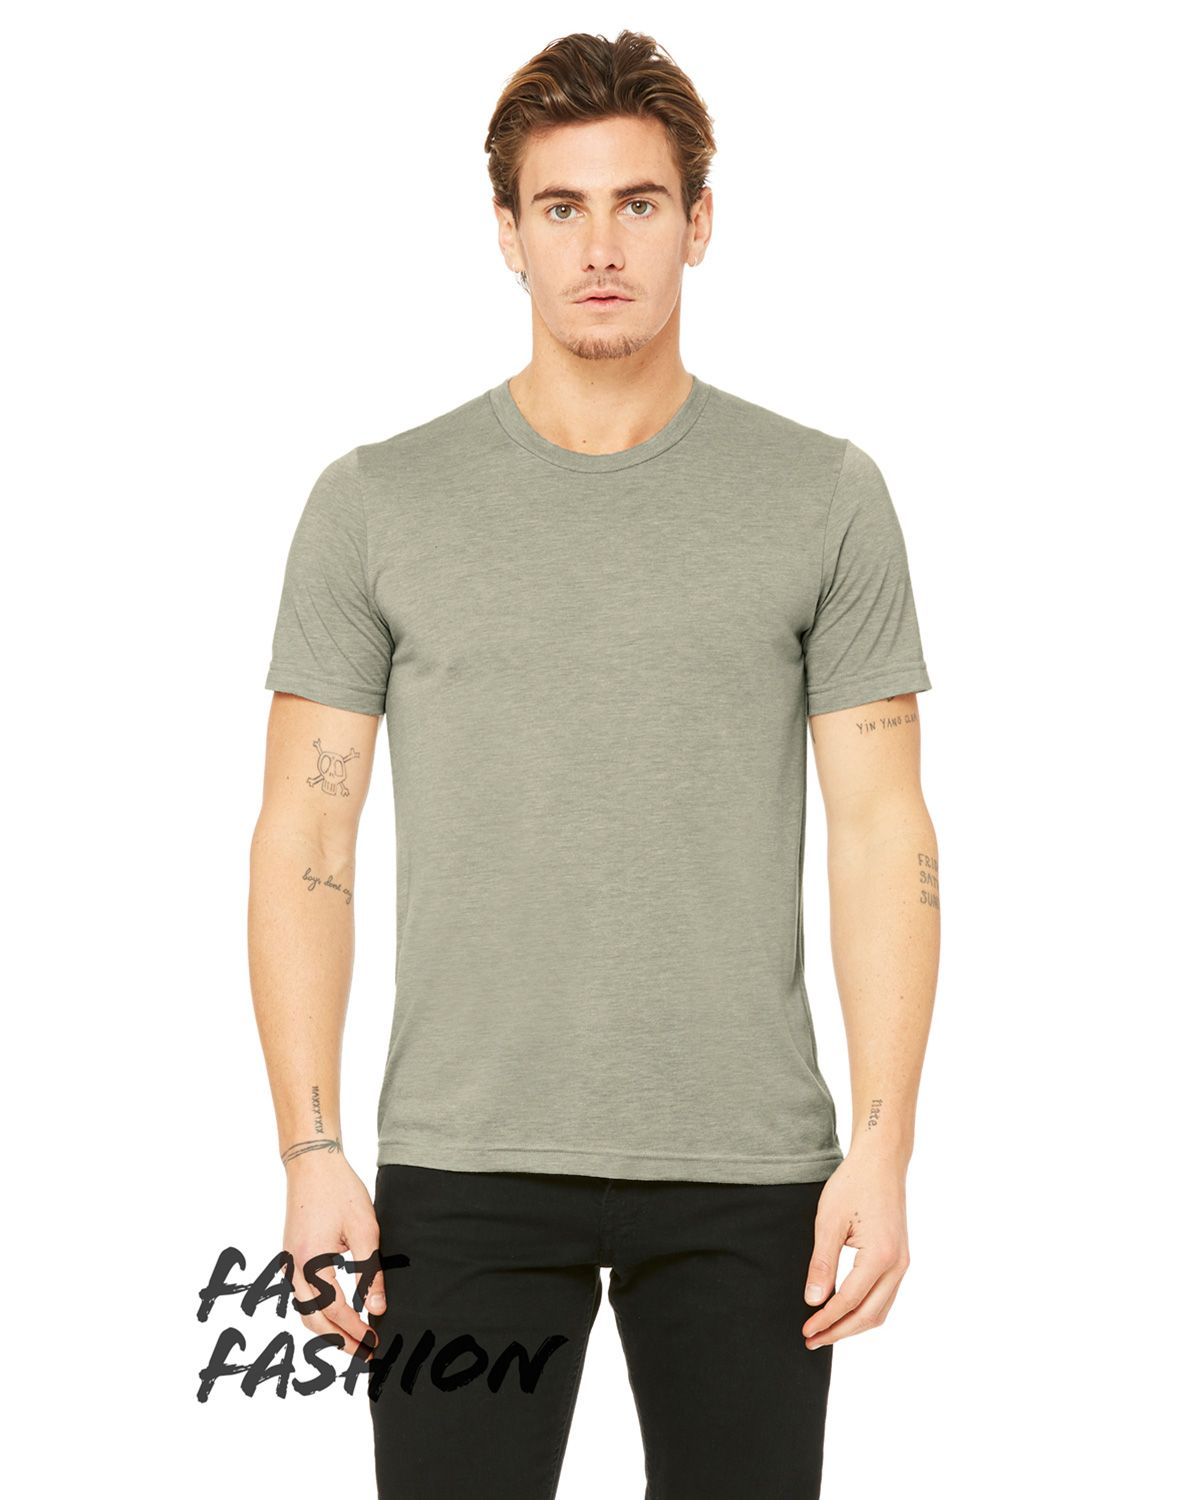 Bella + Canvas 3880C Fast Fashion Viscose Fashion Unisex T-Shirt - Heather Stone - XS #fashion